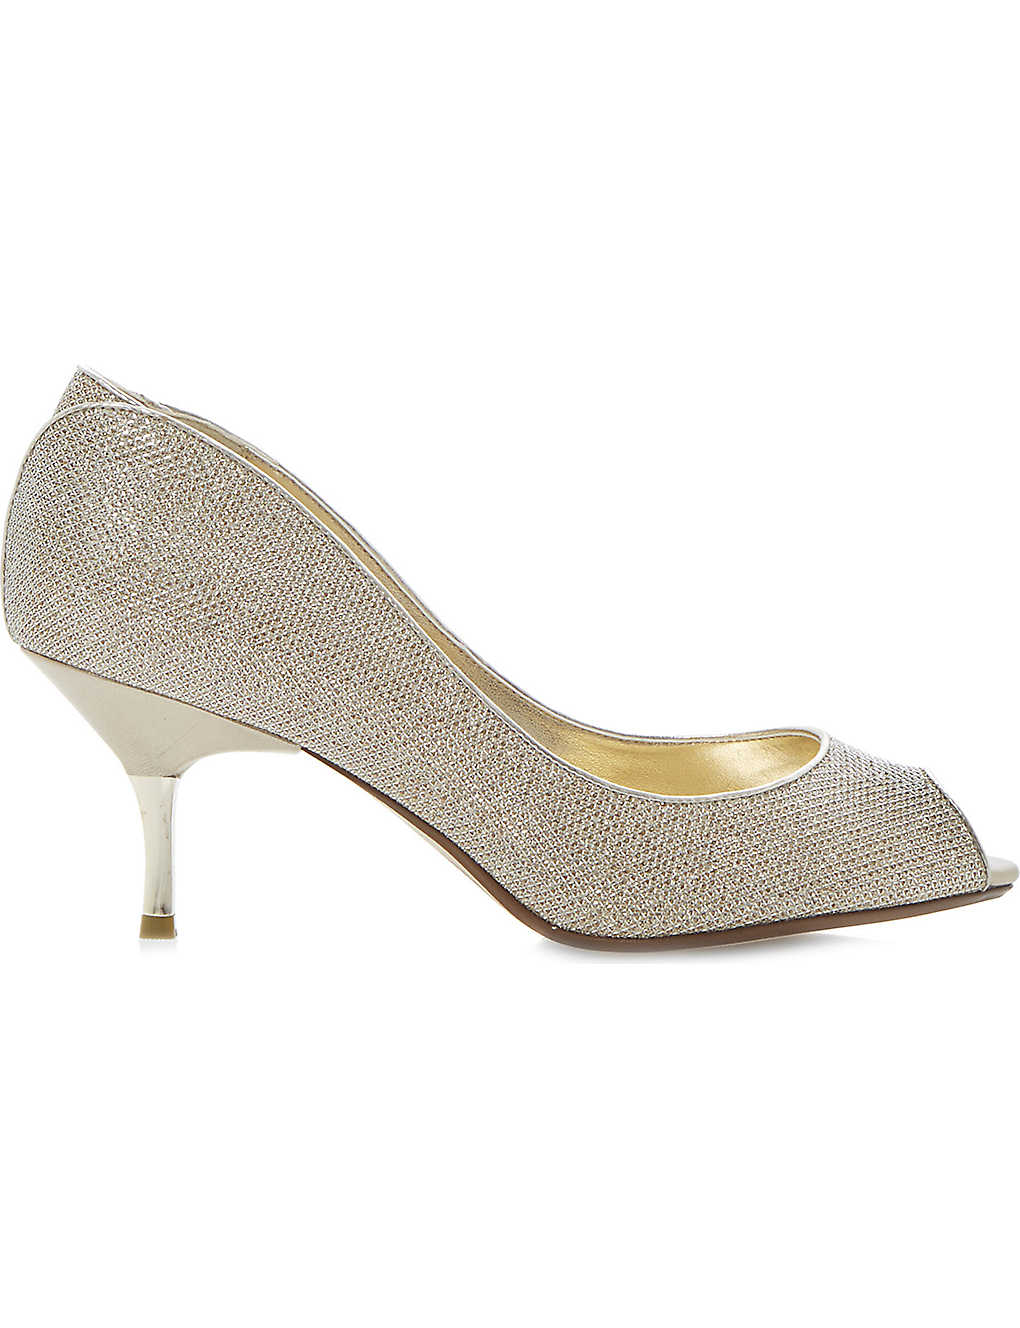 7e80bda22922f DUNE - Decra glitter court shoes | Selfridges.com